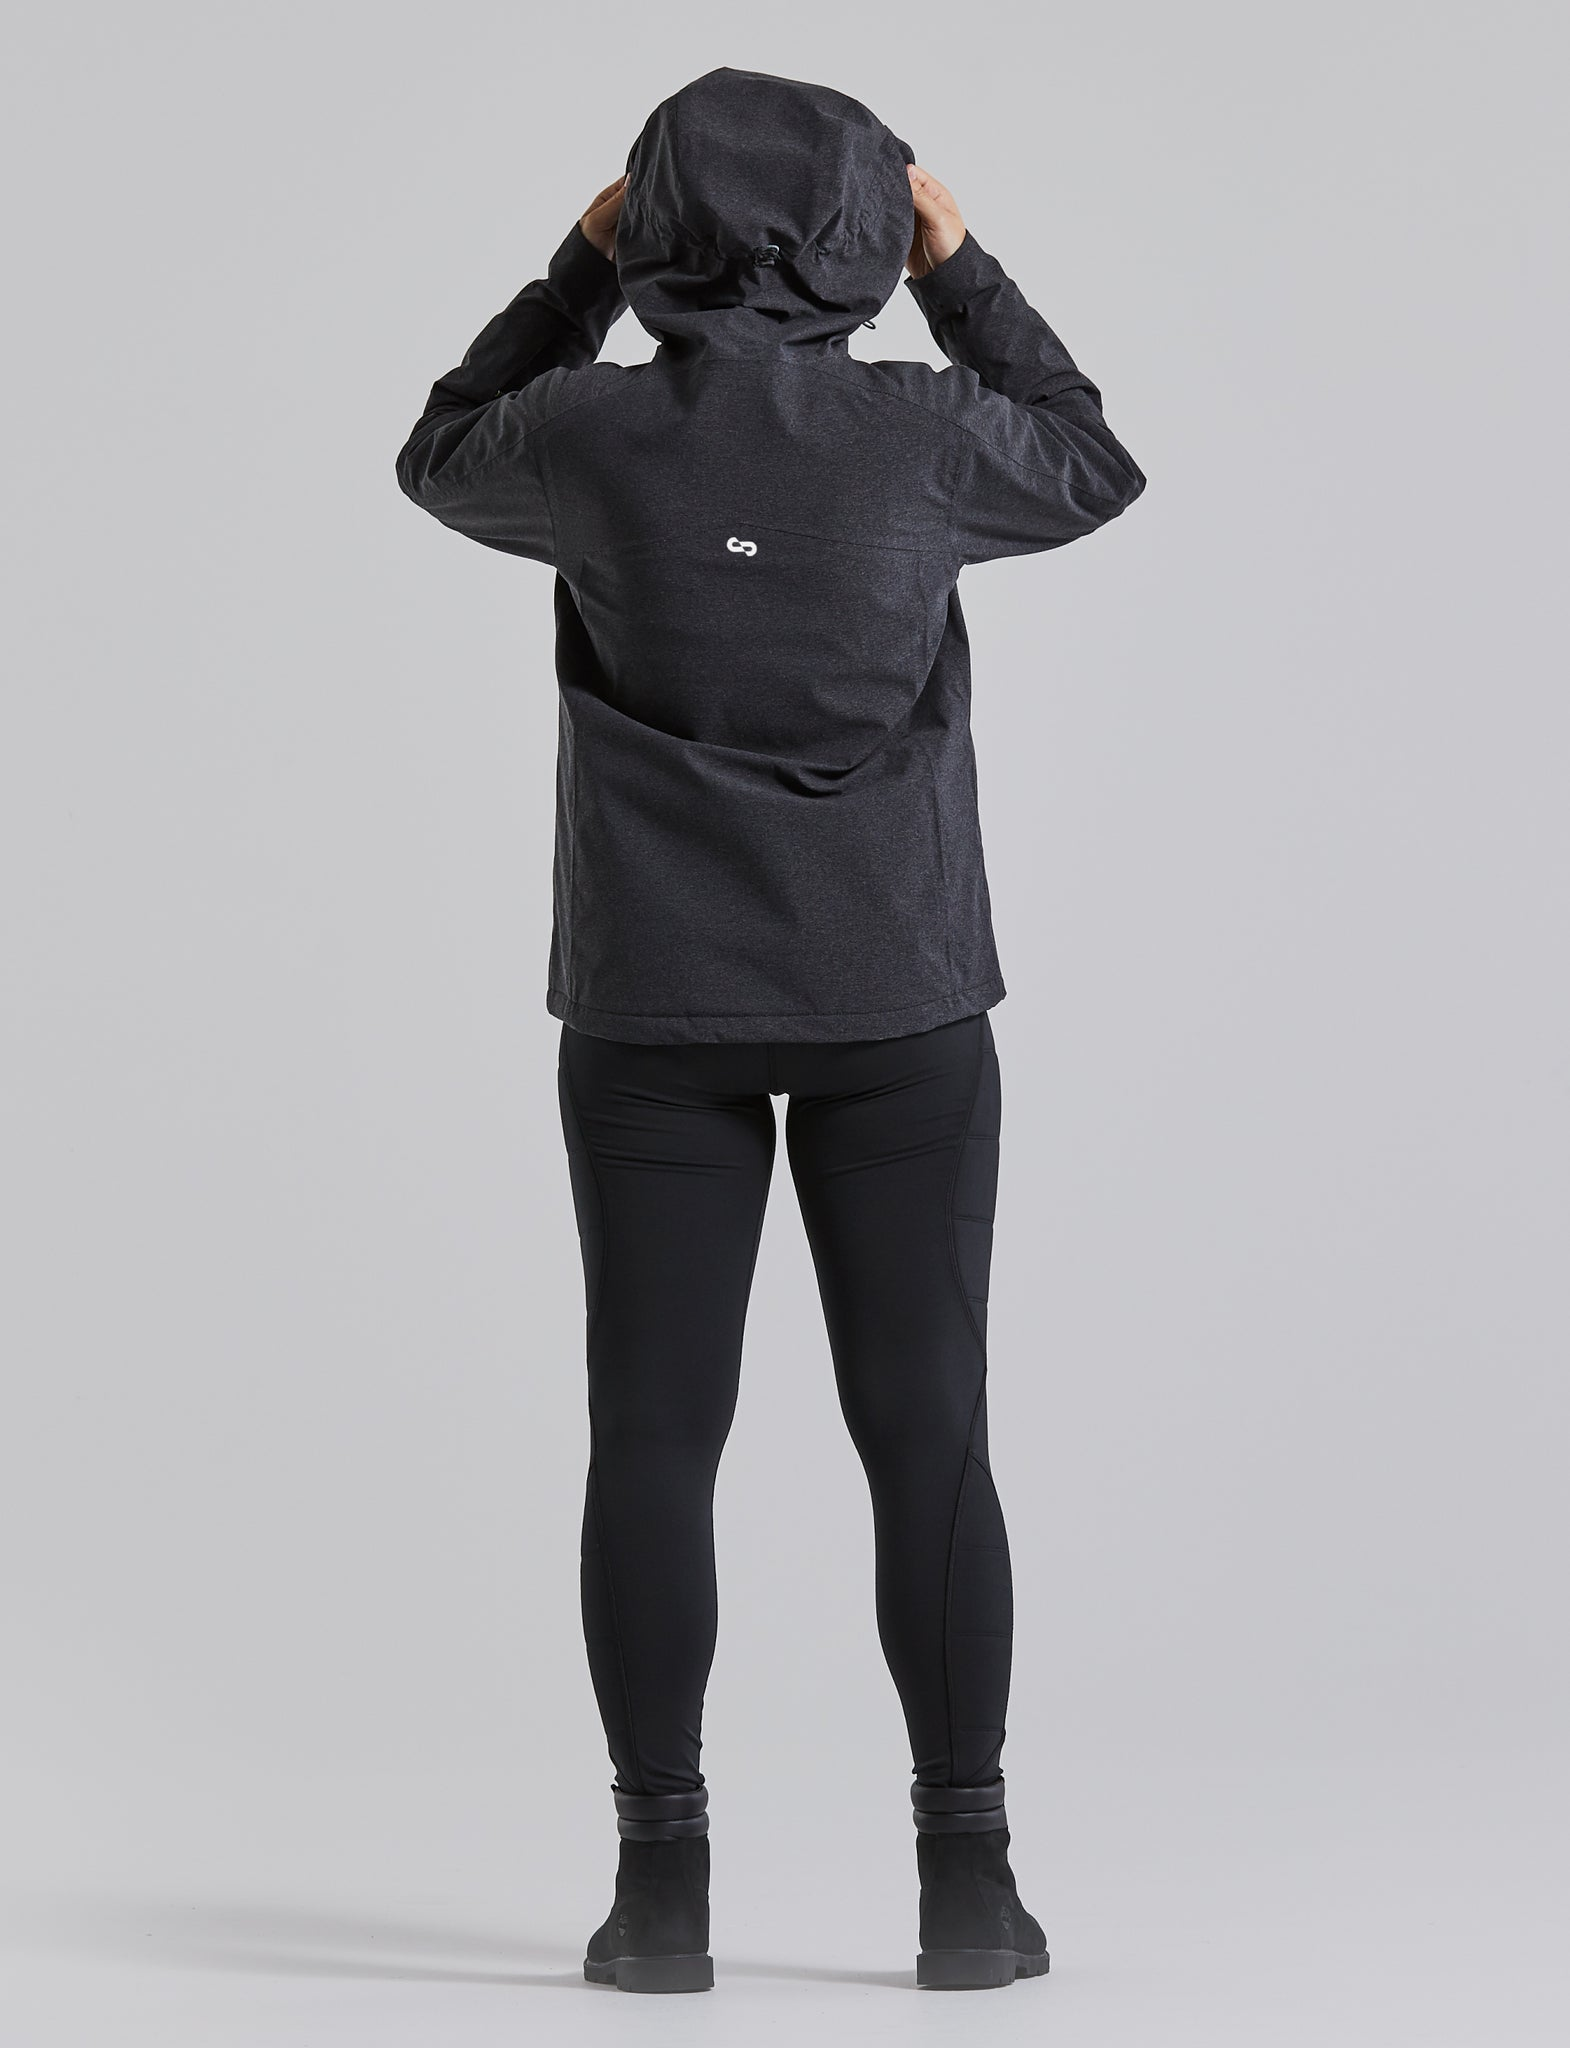 Woman wearing the Endeavour Jacket, color:Black Heather